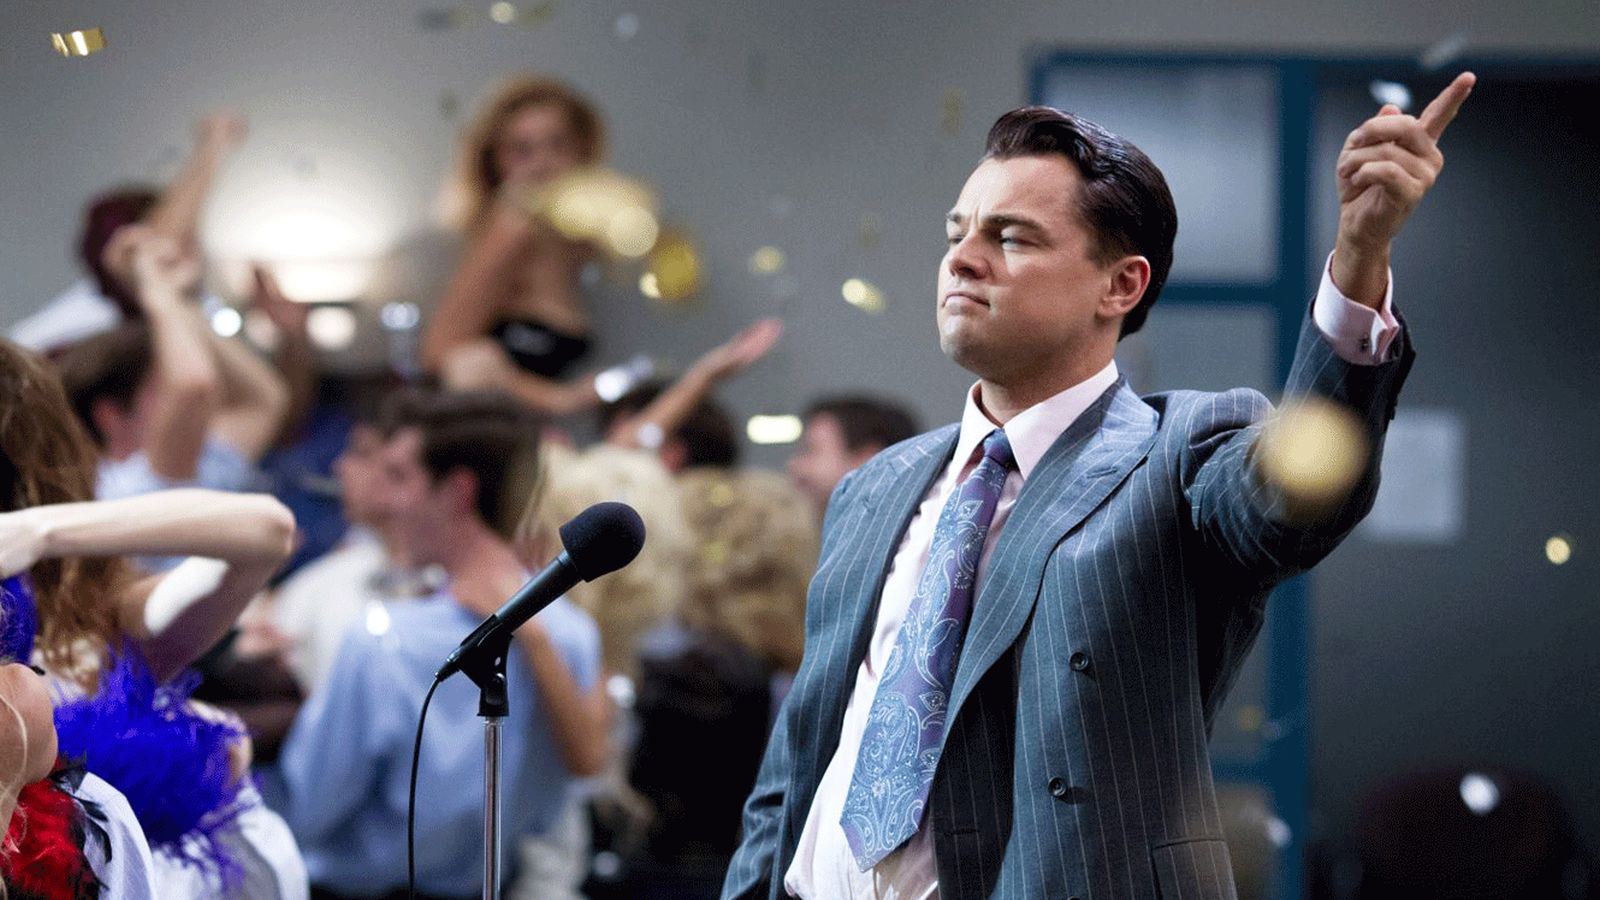 9. The Wolf of Wall Street